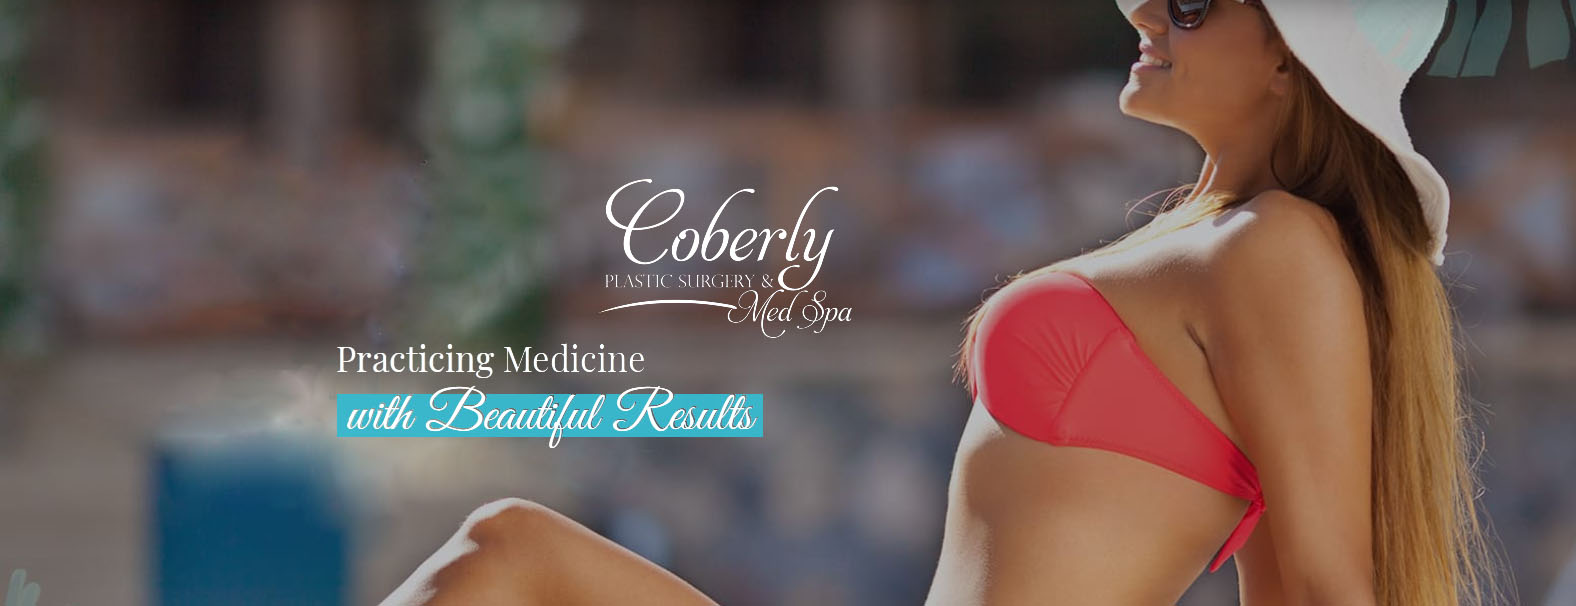 Coberly Plastic Surgery reviews | 508 S. Habana Ave. - Tampa FL